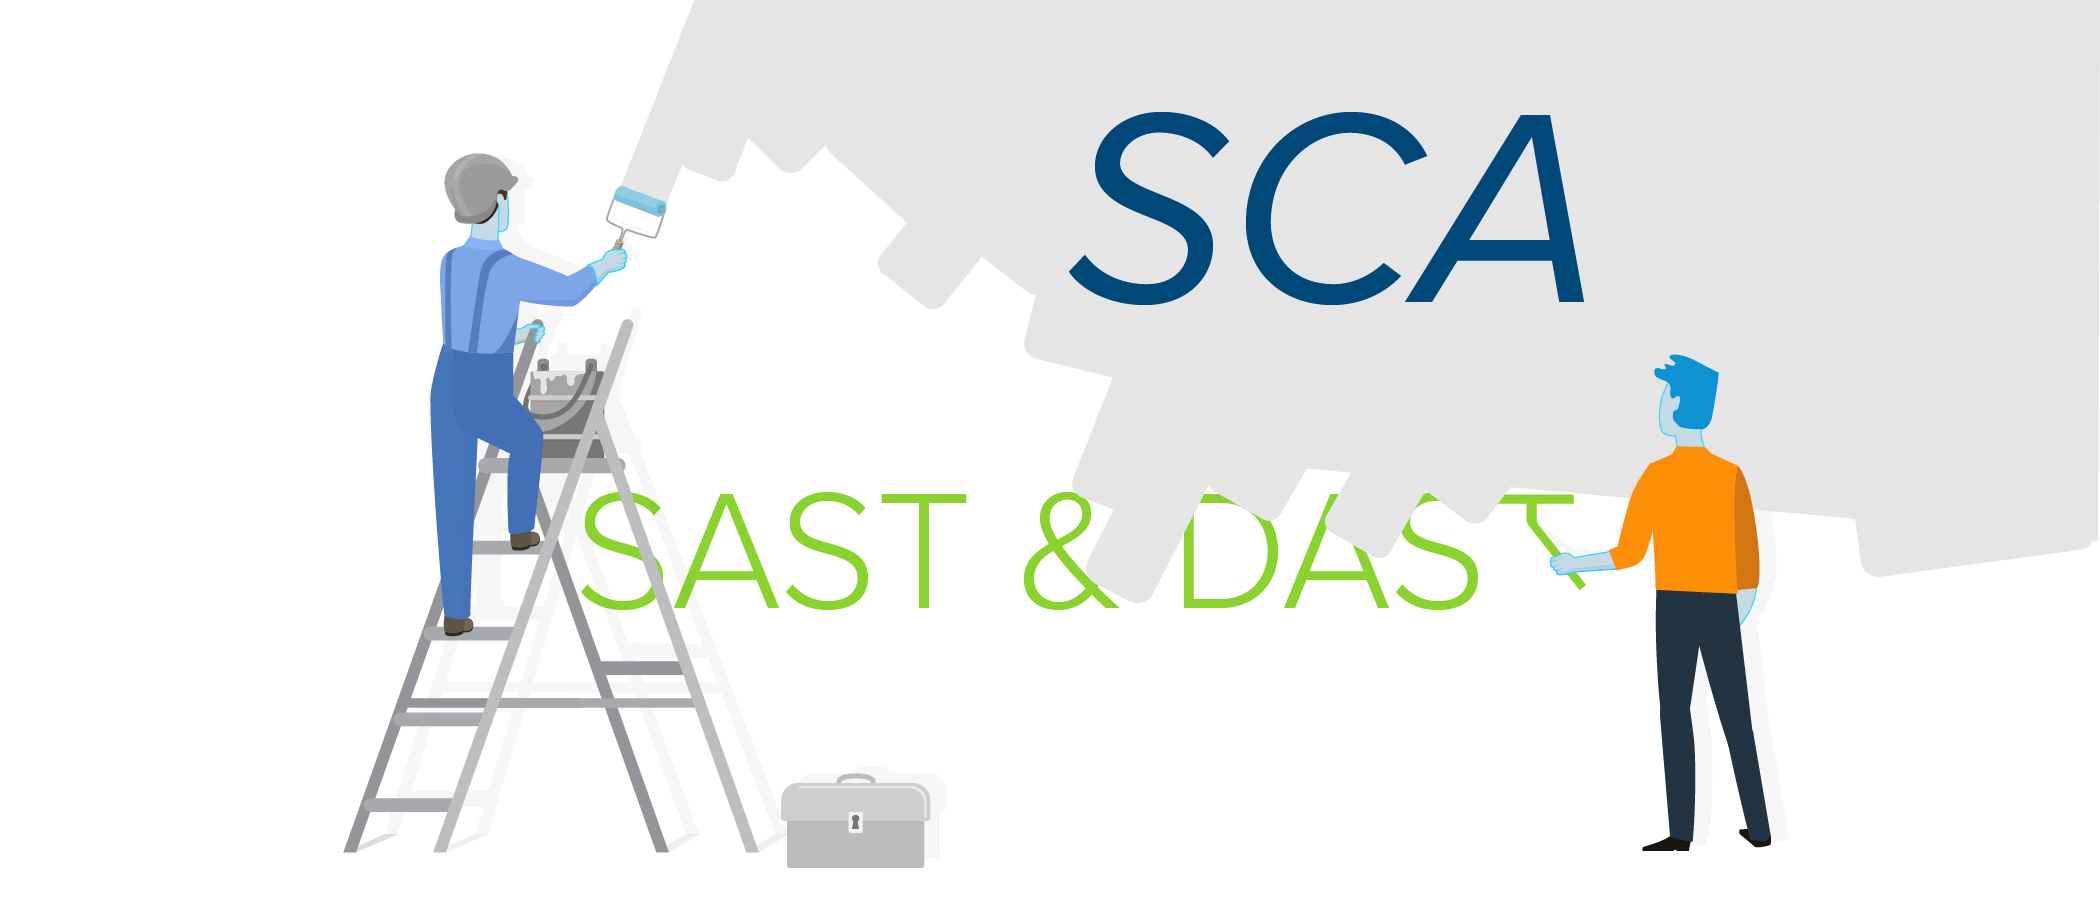 When Does Software Composition Analysis (SCA) replace SAST or DAST?